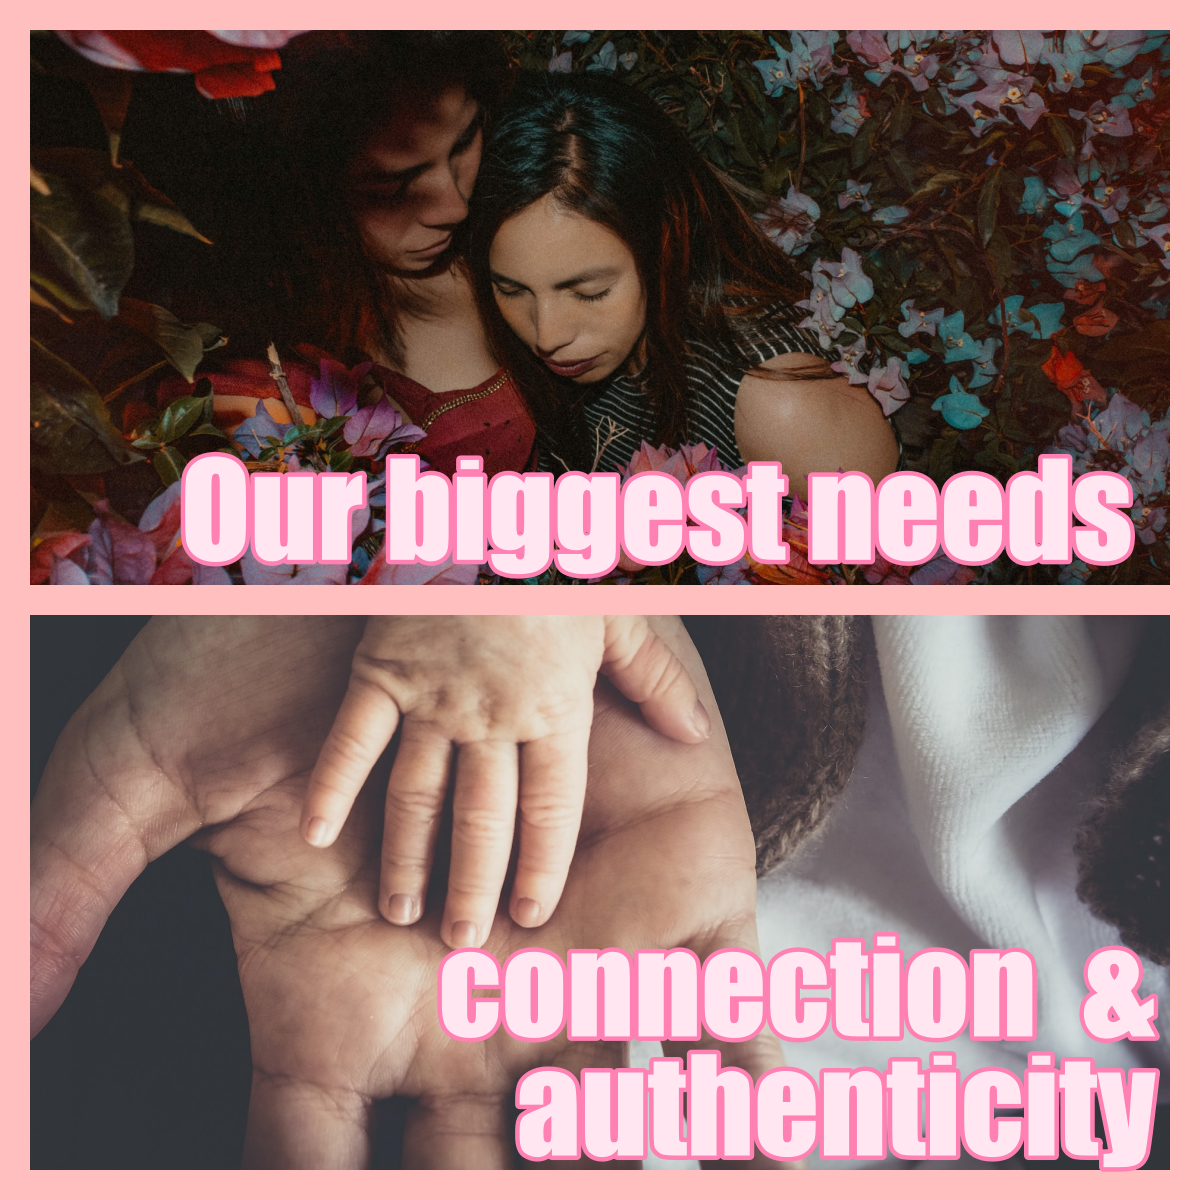 CONNECTION & AUTHENTICITY IS WHAT WE NEED AND YEARN FOR THE MOST